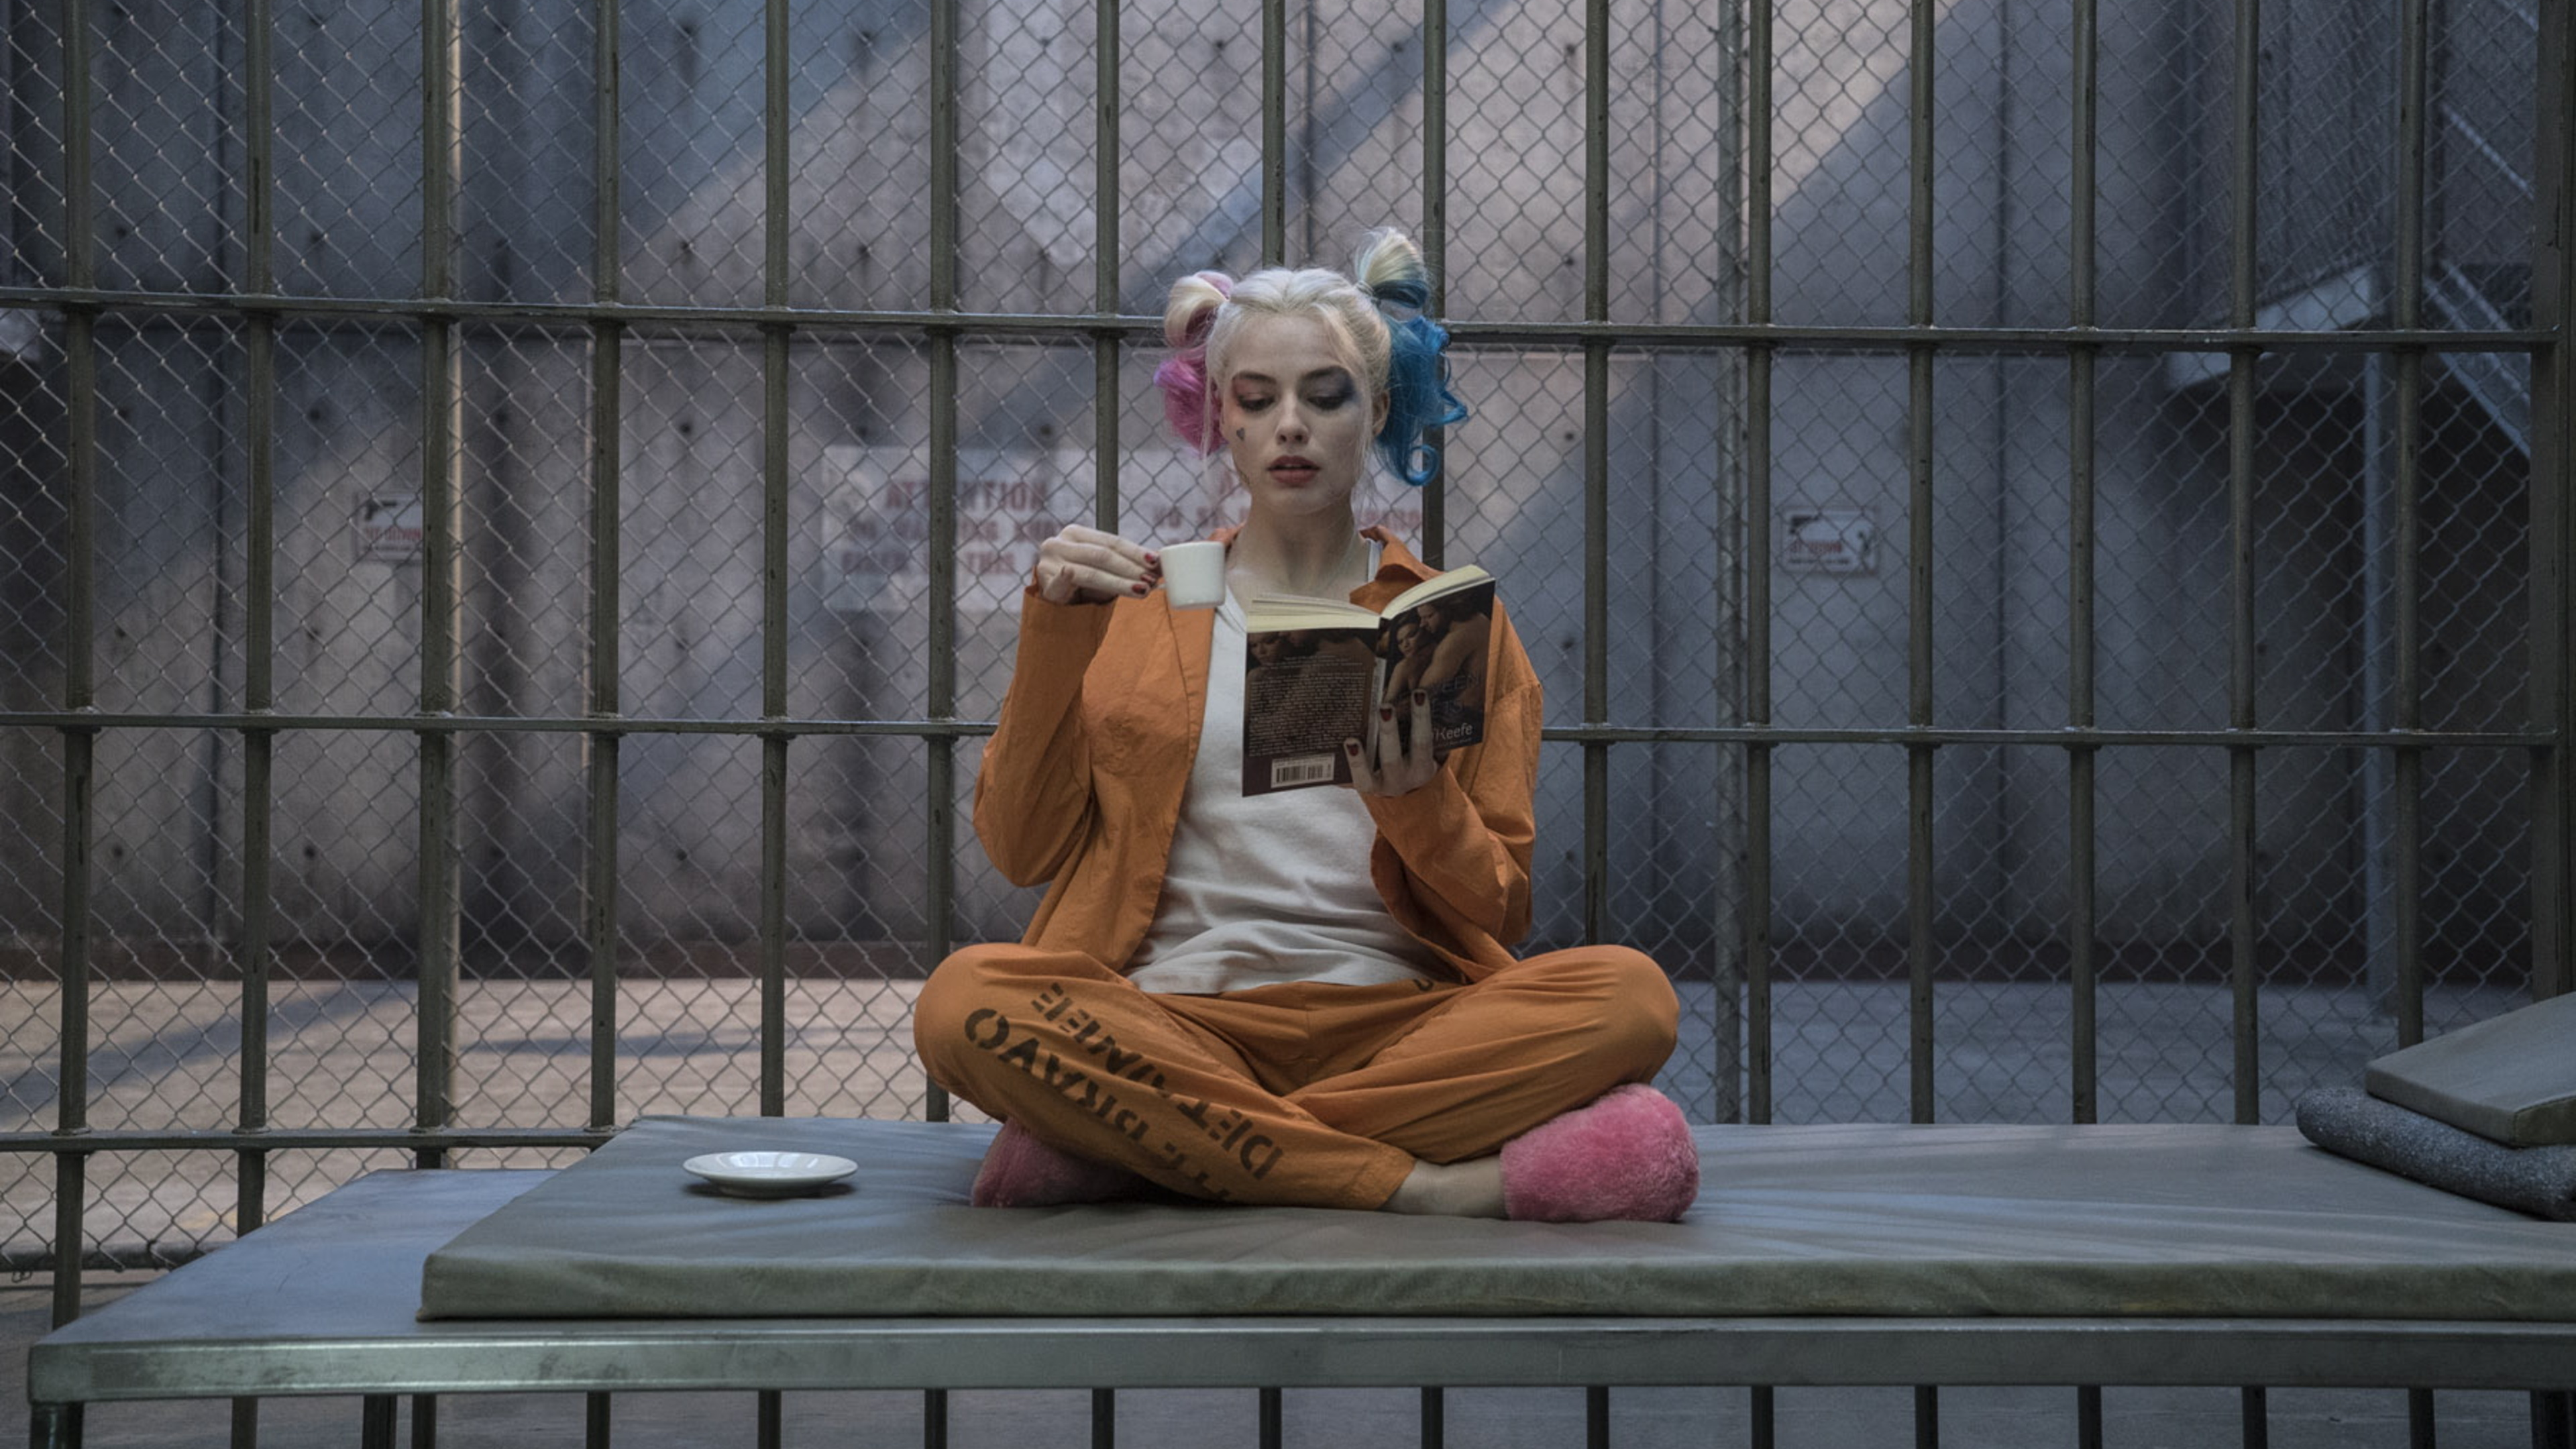 3840x2160 Margot Robbie Suicide Squad 4k Hd 4k Wallpapers Images Backgrounds Photos And Pictures